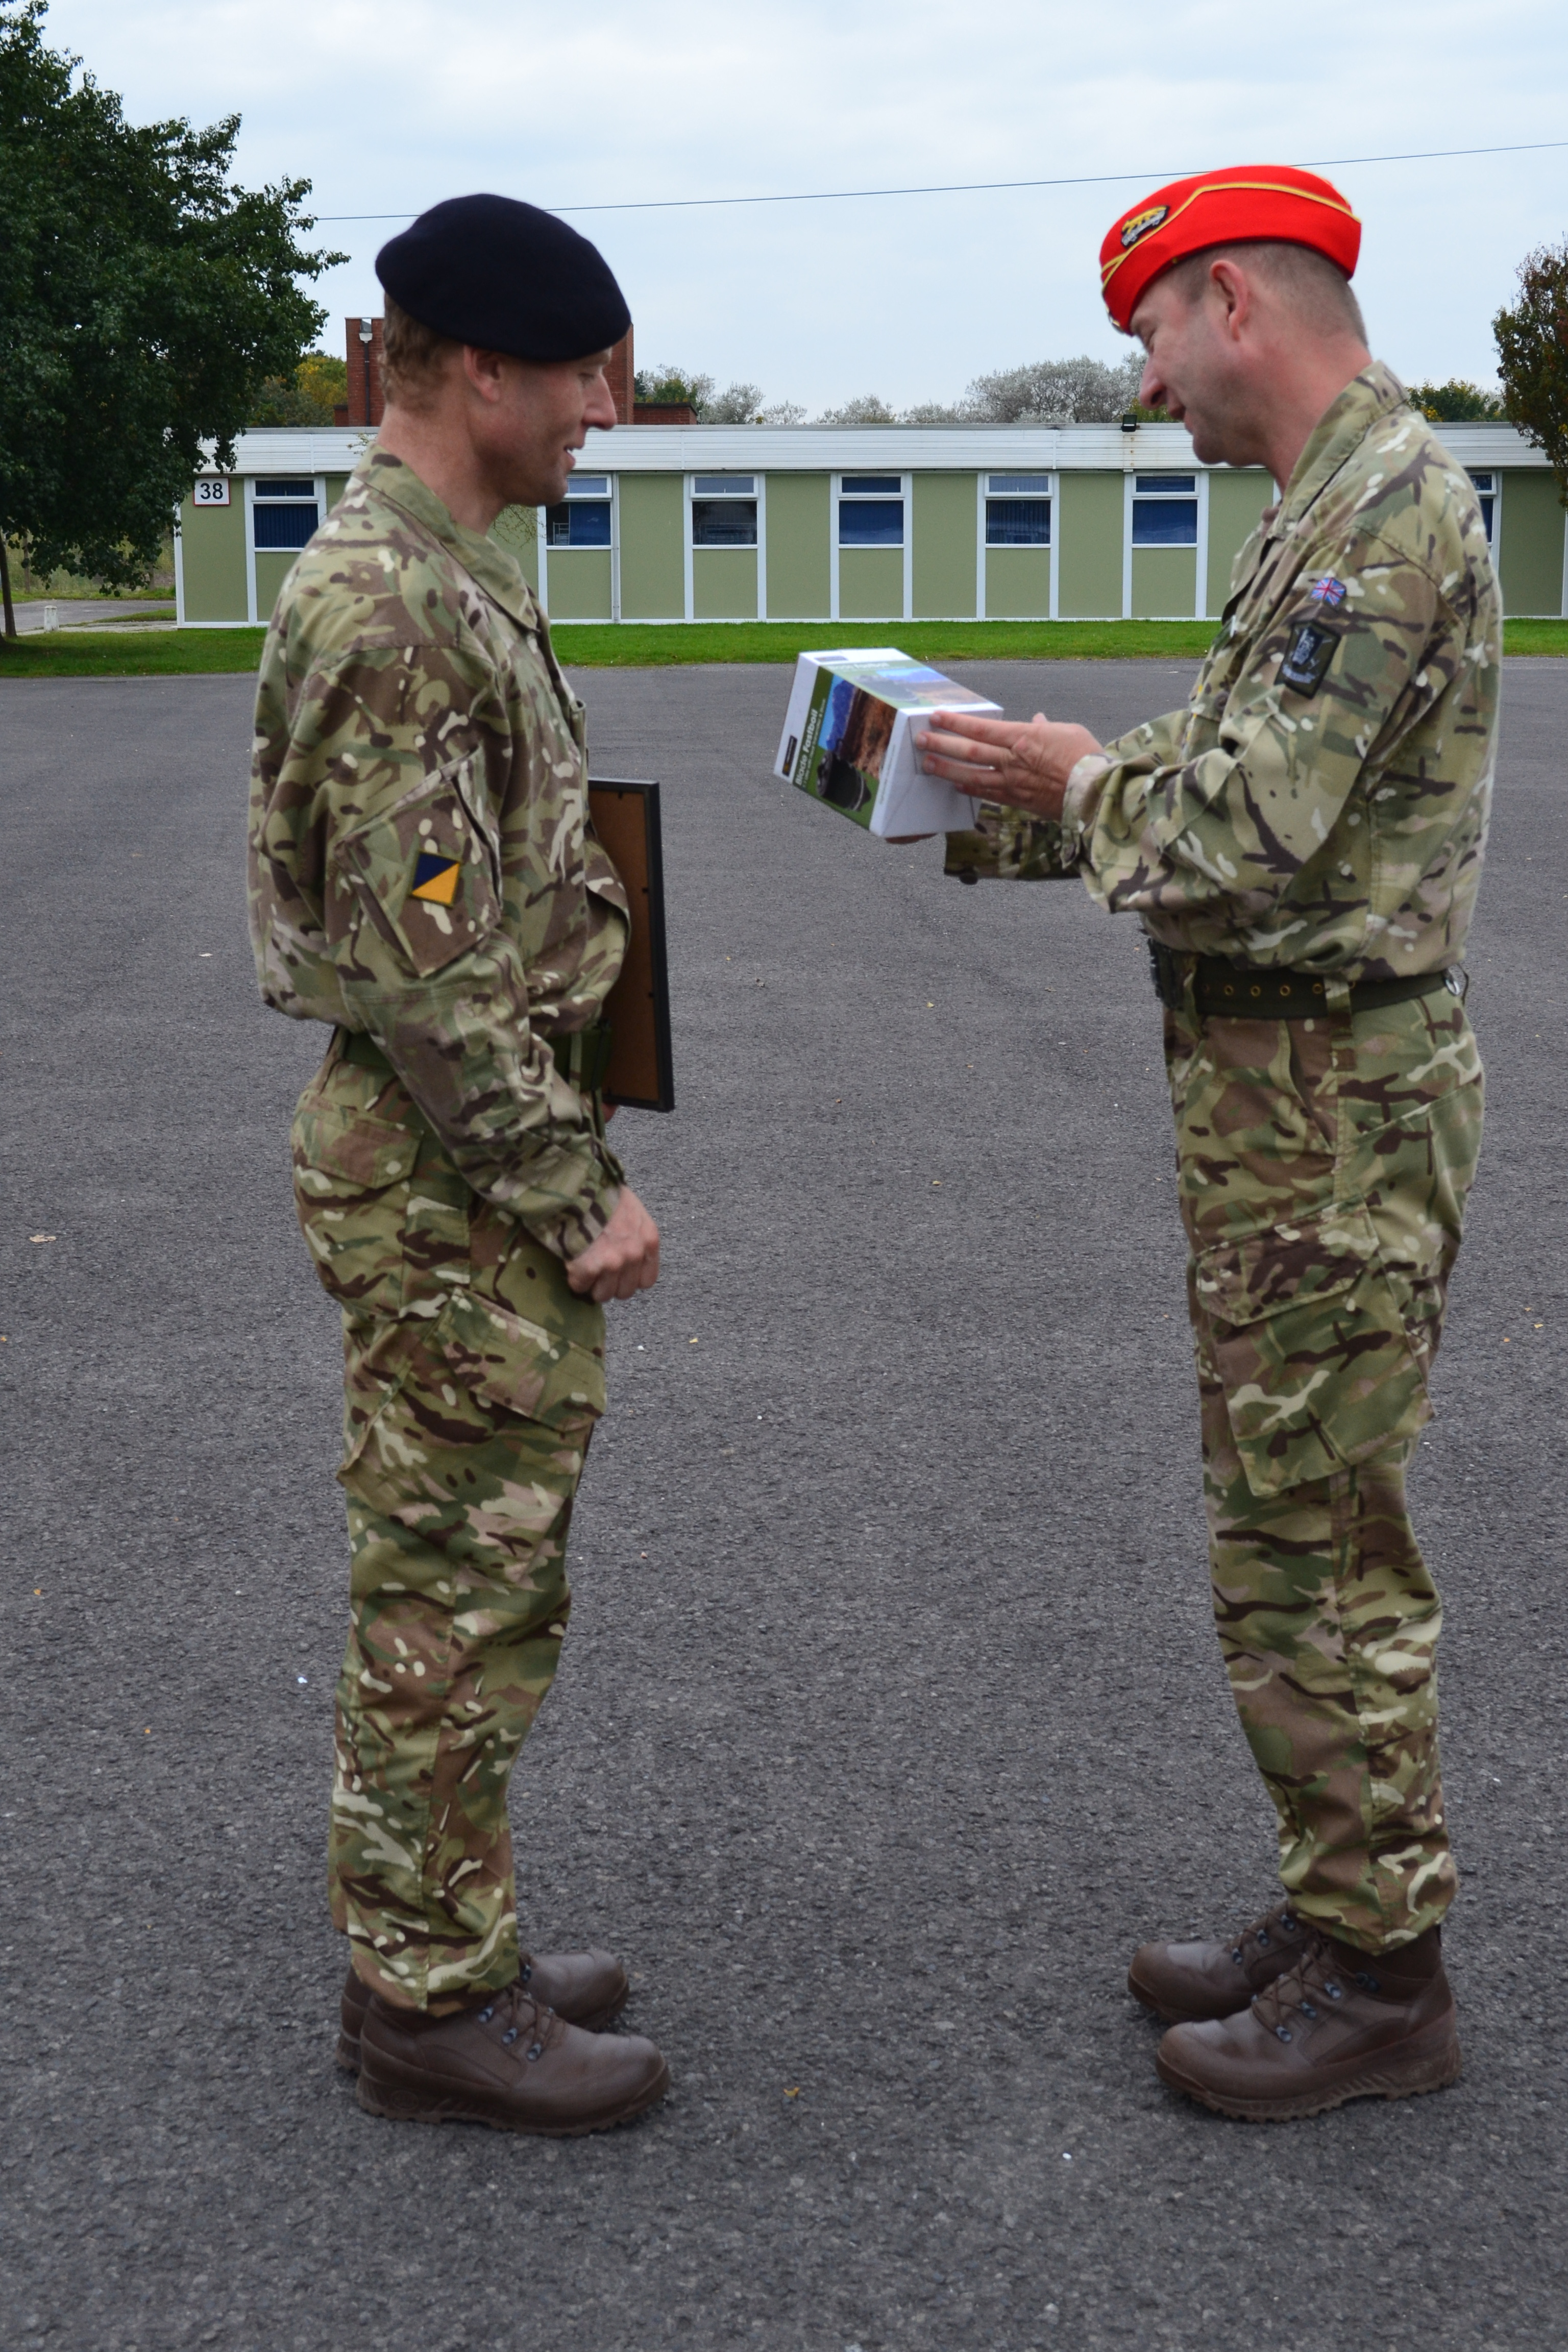 North West recruits begin Army Reserve career - North West RFCA